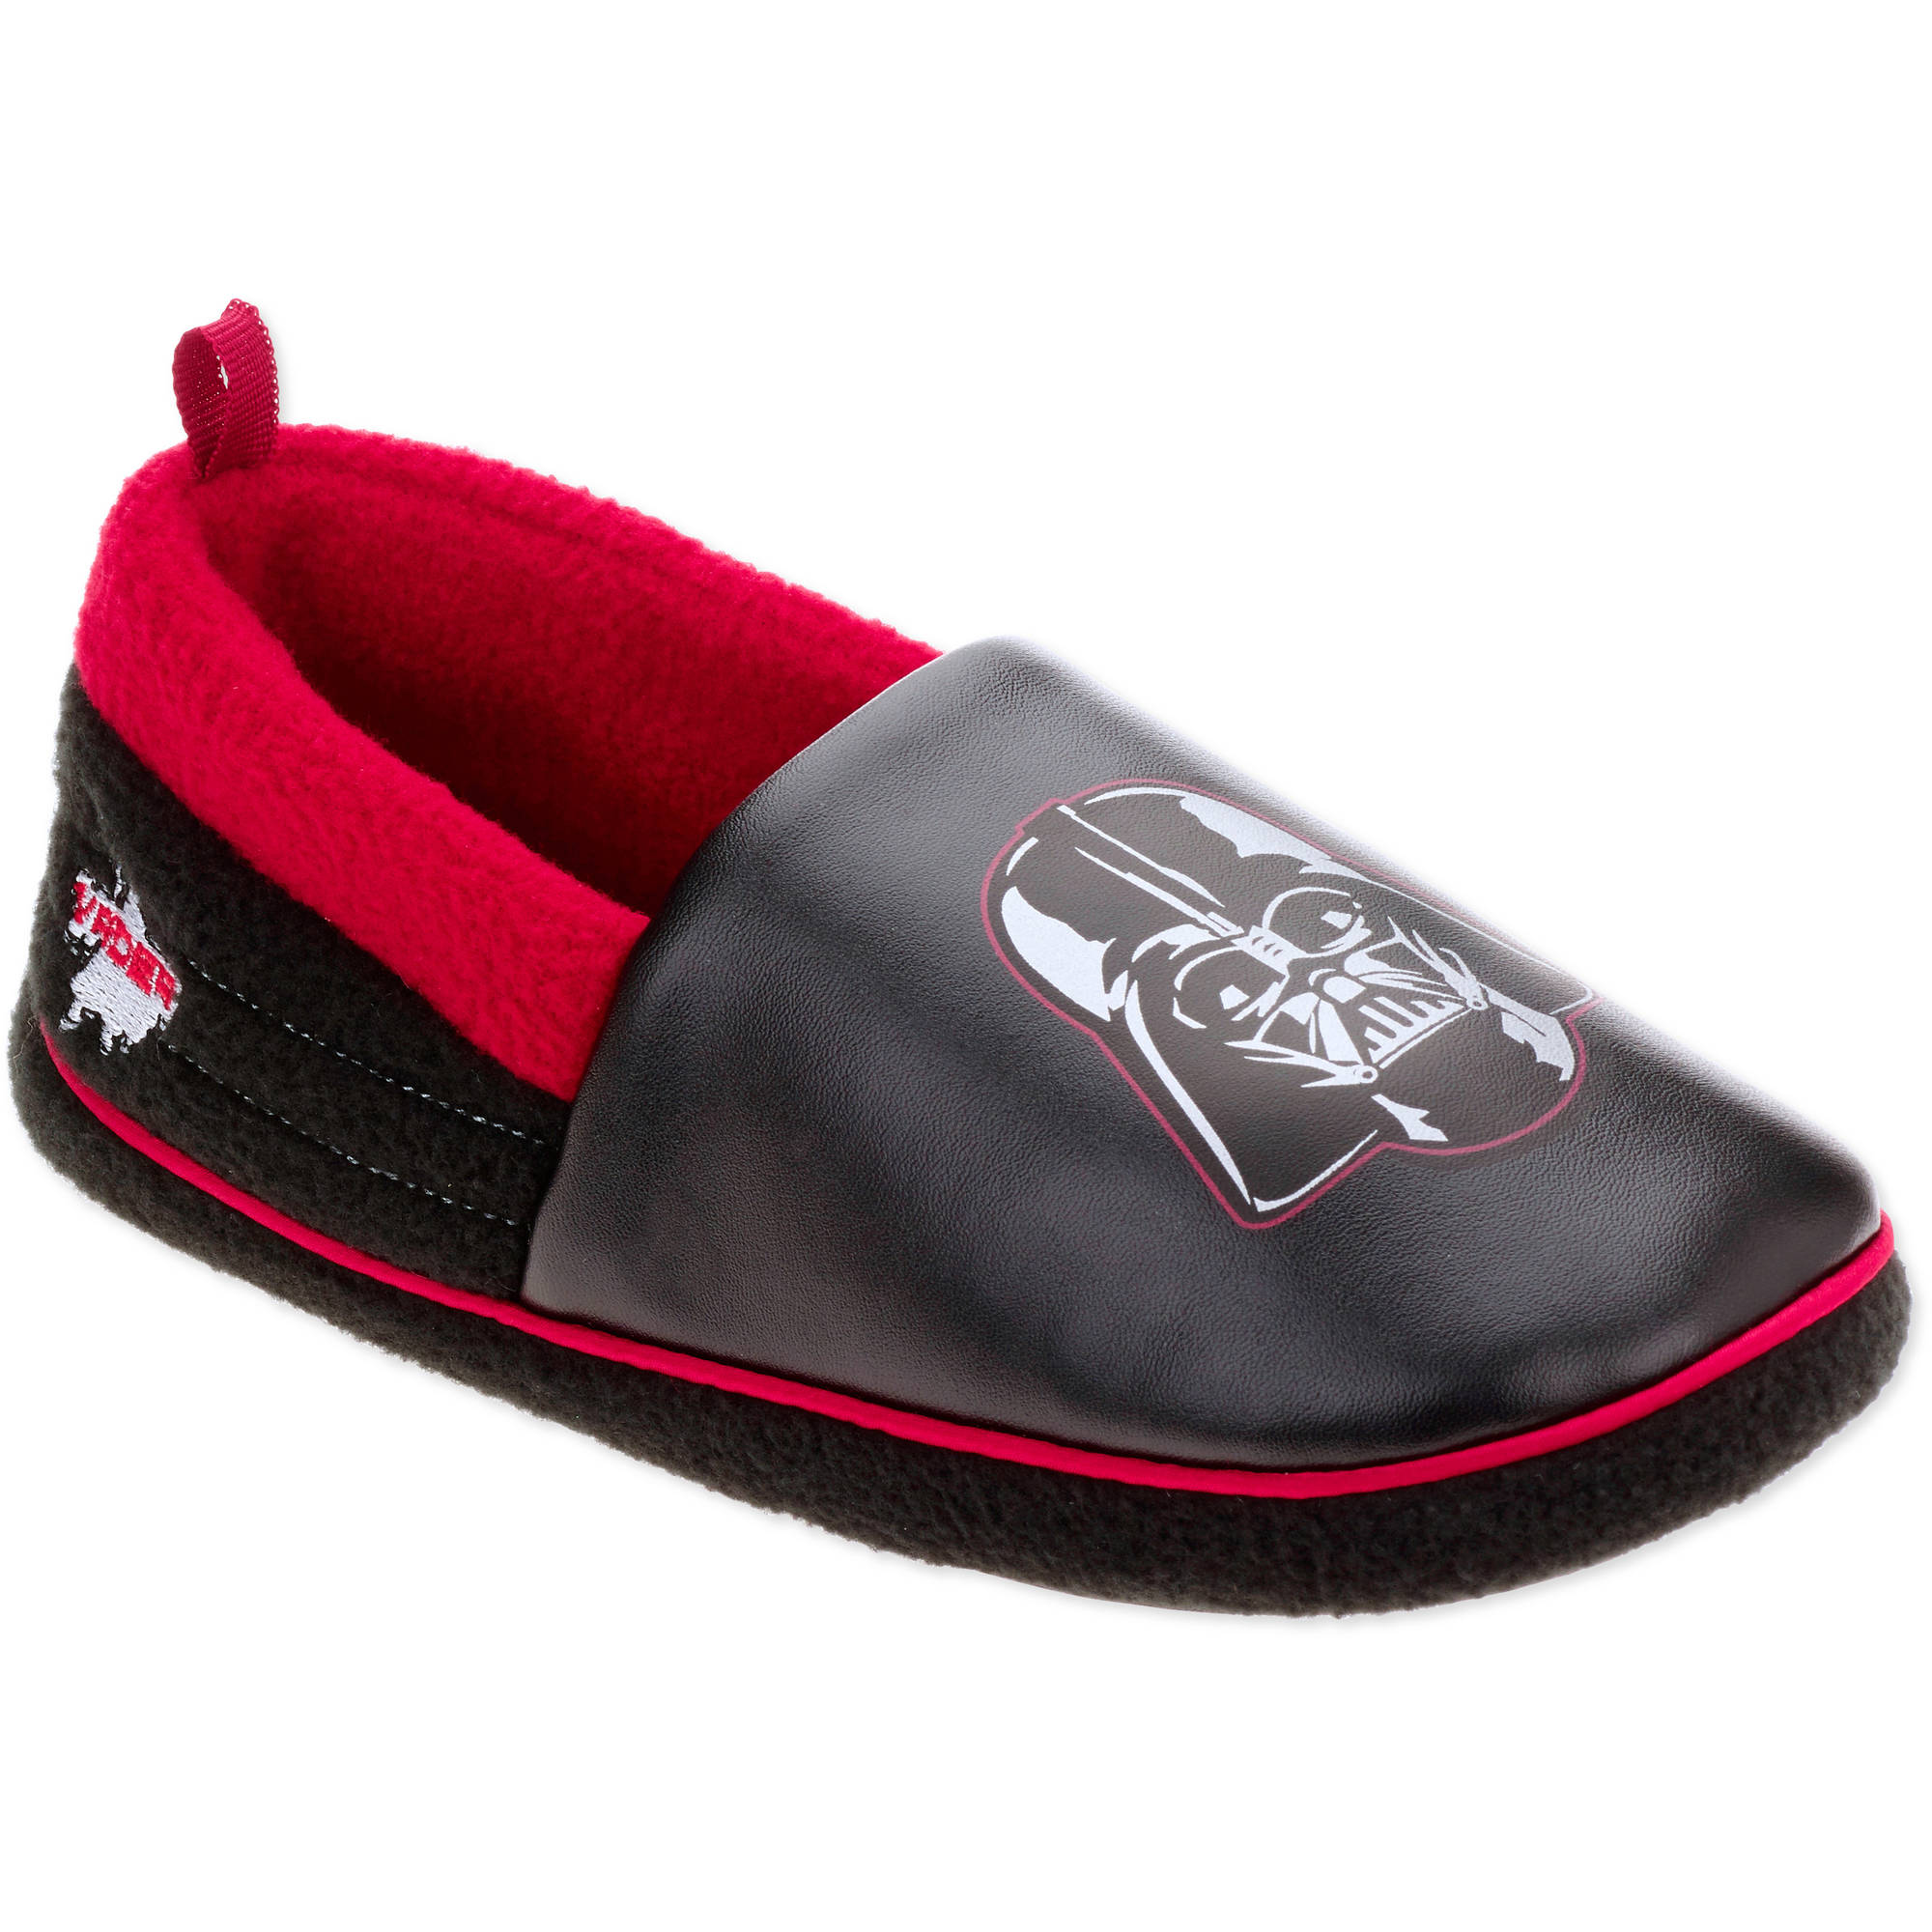 Darth Vader Boy's Slipper